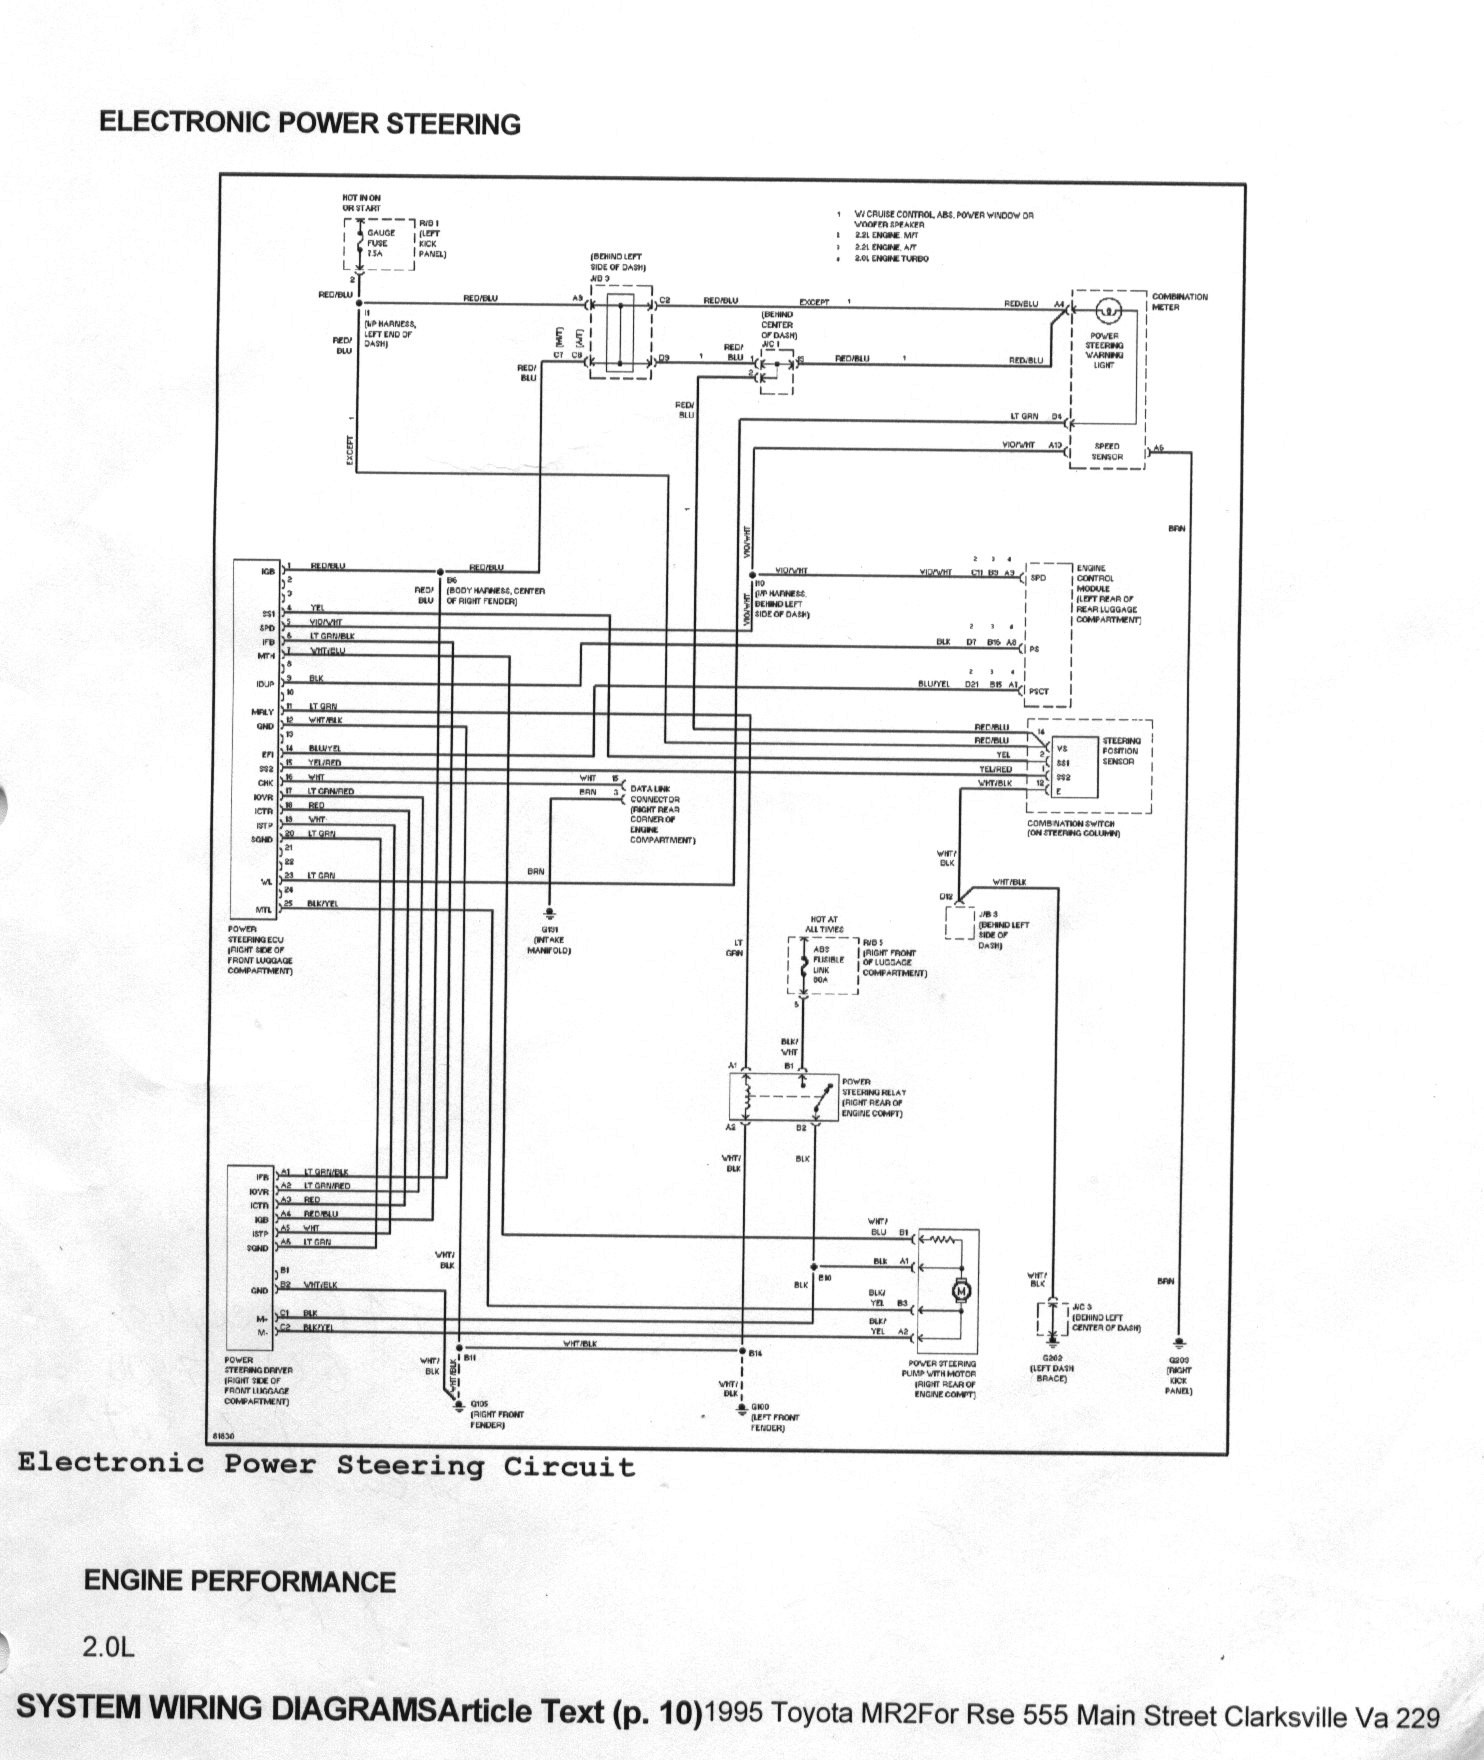 329699 Toyota Mr2 Ecu Wiring Diagram: 1990 Toyota Mr2 Wiring Diagram At Galaxydownloads.co